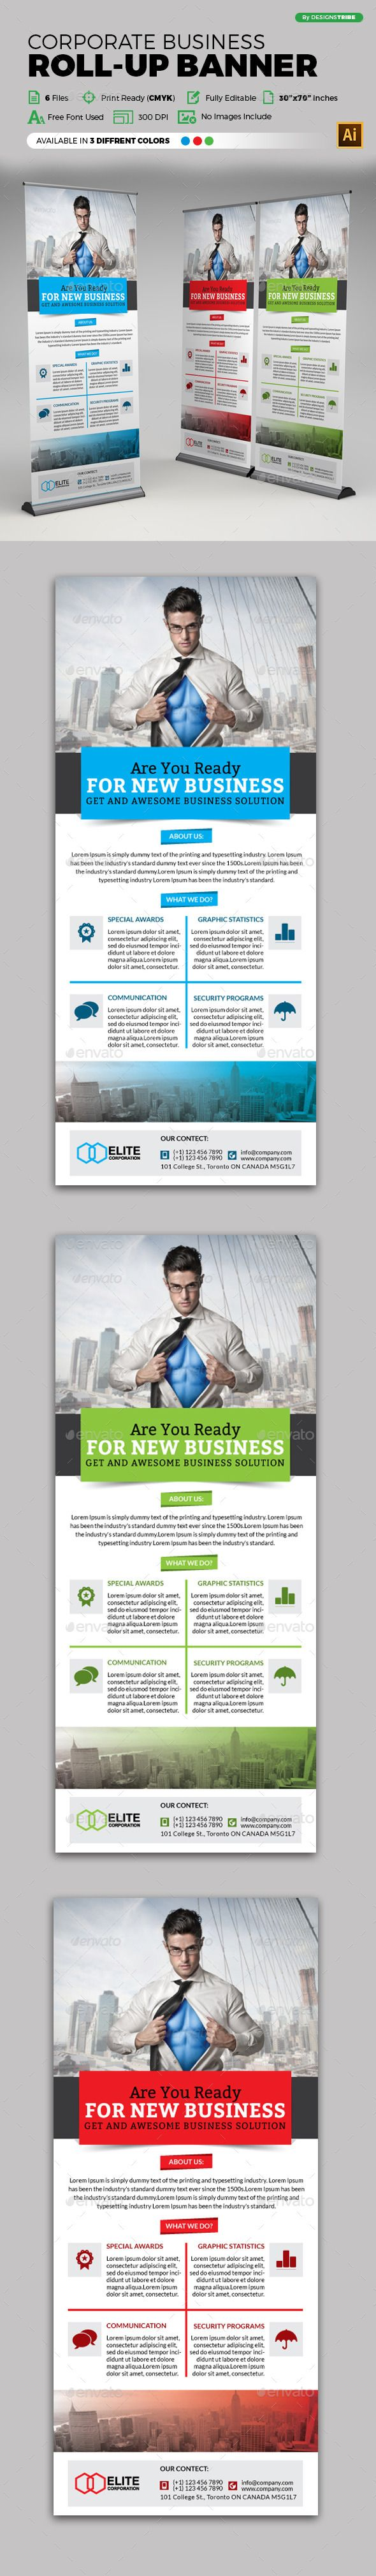 Corporate Roll-up Banner Tempalte #design Download: http://graphicriver.net/item/corporate-rollup-banner/12920772?ref=ksioks